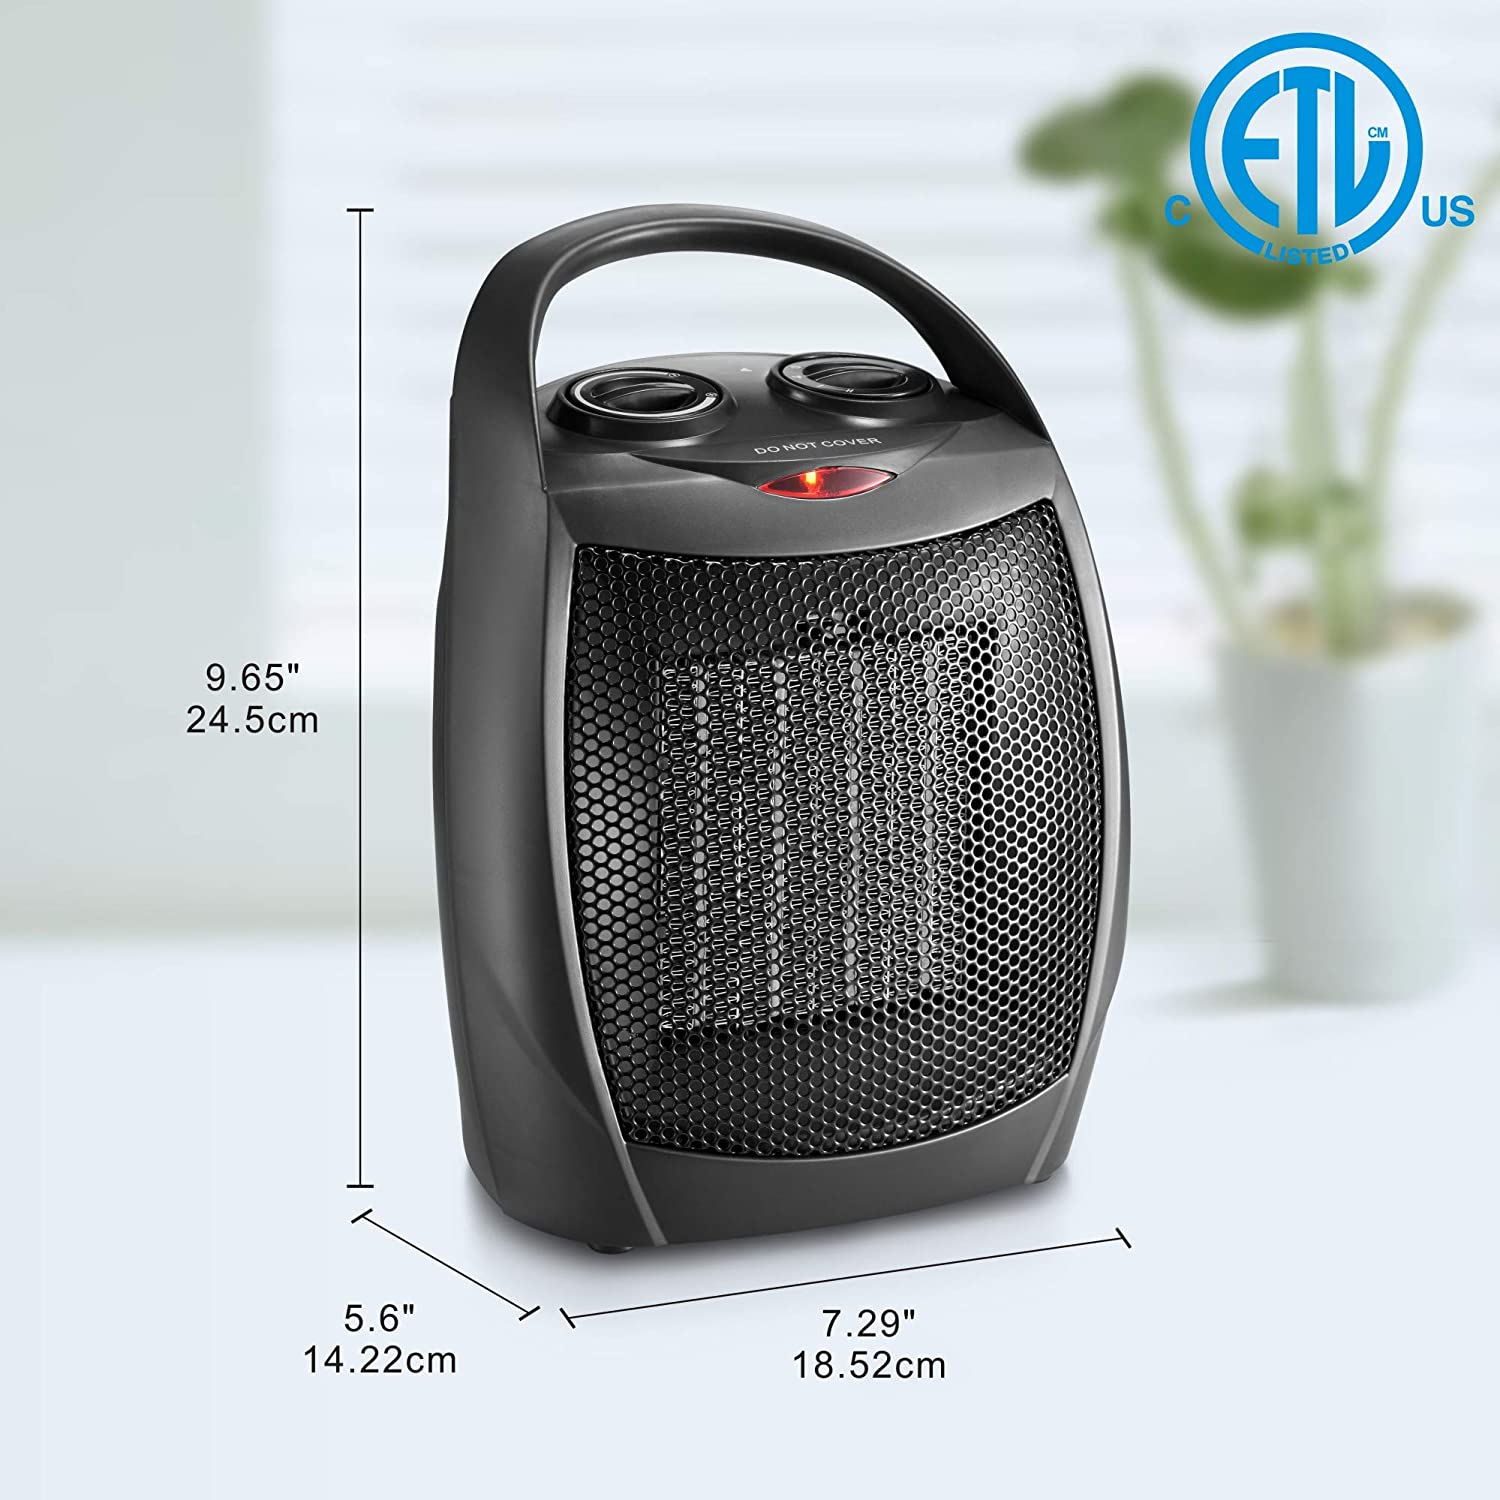 HOME_CHOICE Small Ceramic Space Heater Electric Portable Heater Fan for Home Dorm Office Desktop and kitchen with Adjustable Thermostat,ETL Listed for Safe Use Black